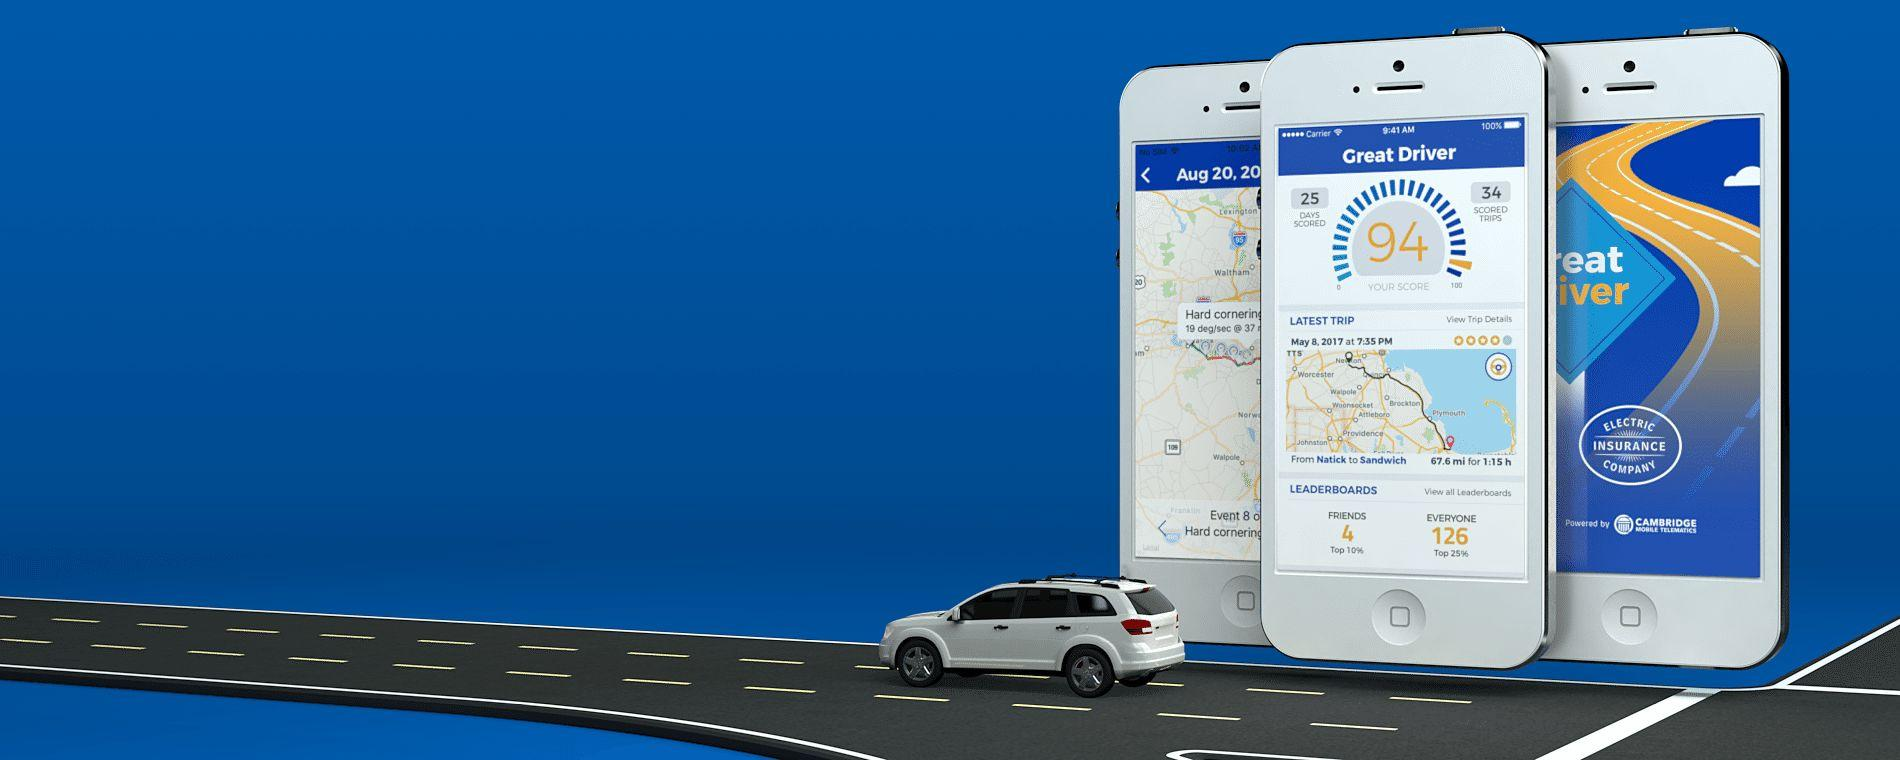 Great Driver smartphone app